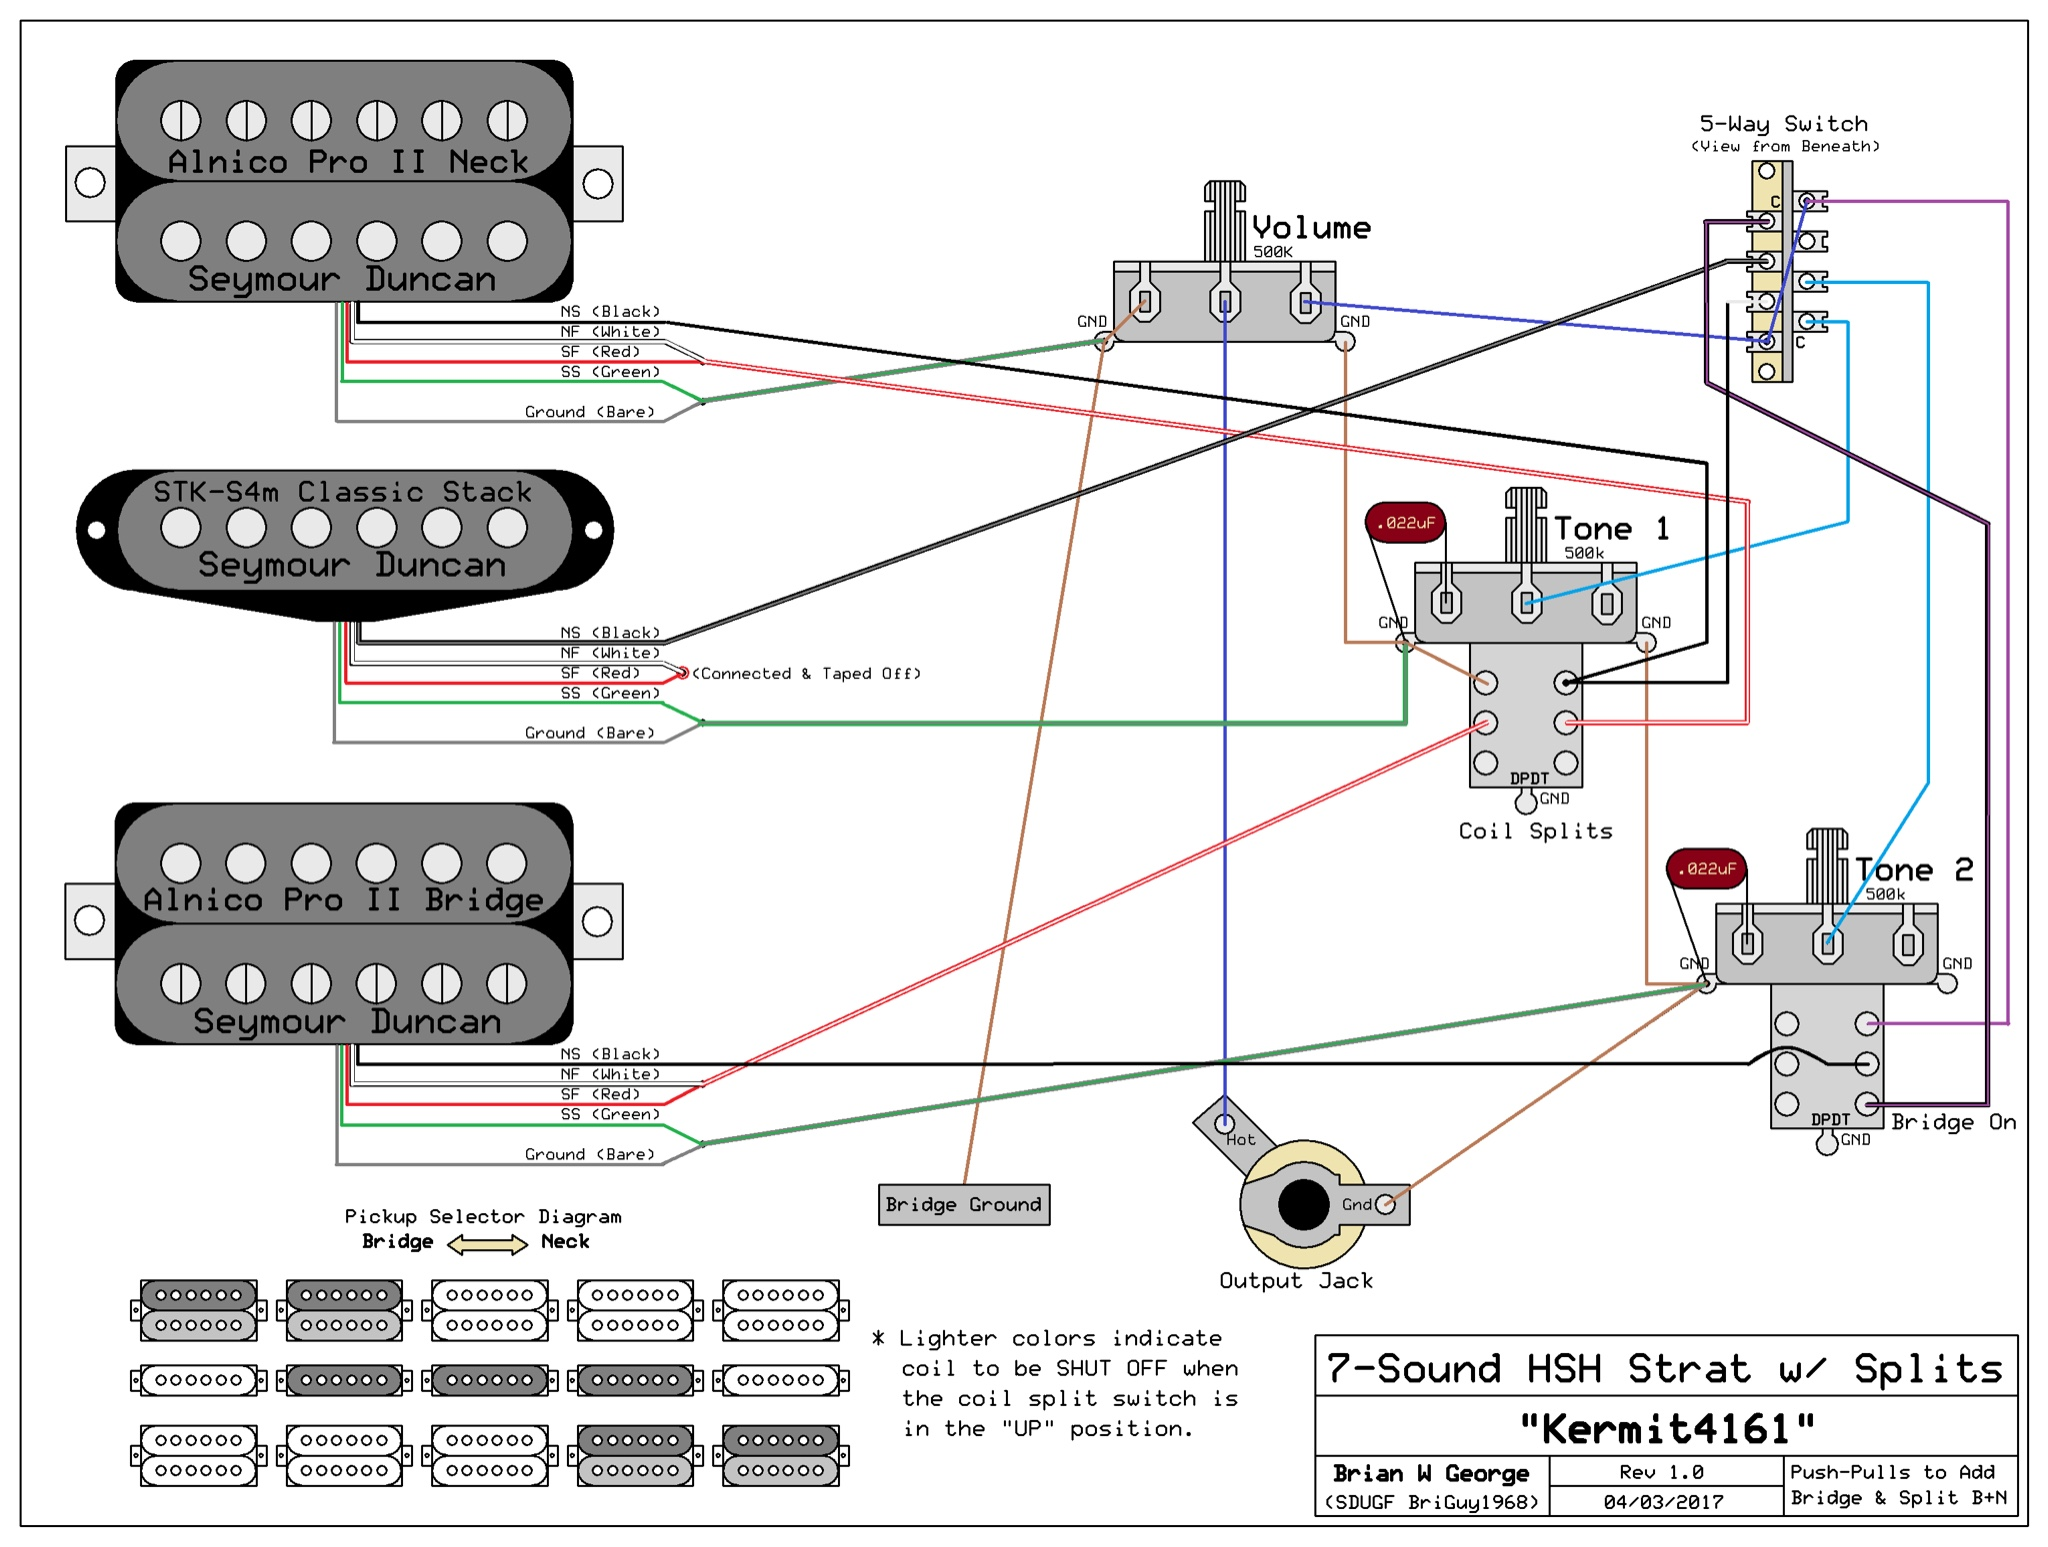 Hsh Wiring 7 Way - Wiring Diagram Post on